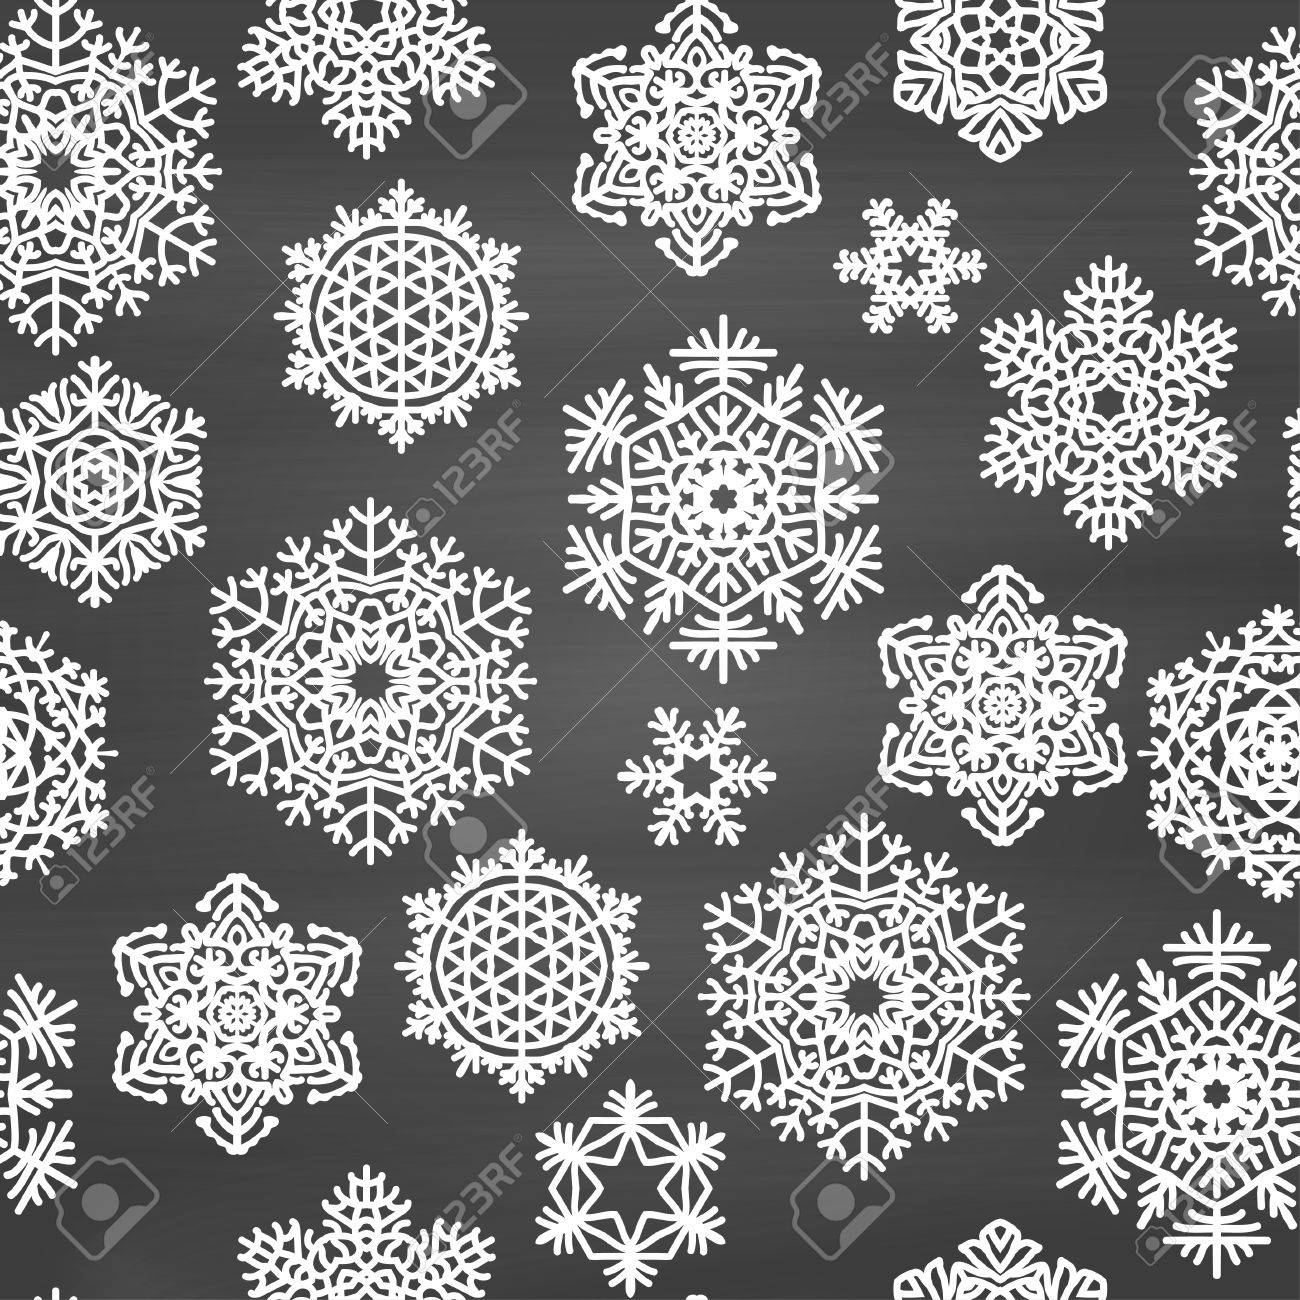 Winter Seamless Pattern With Hand Drawn Snowflakes On Chalkboard